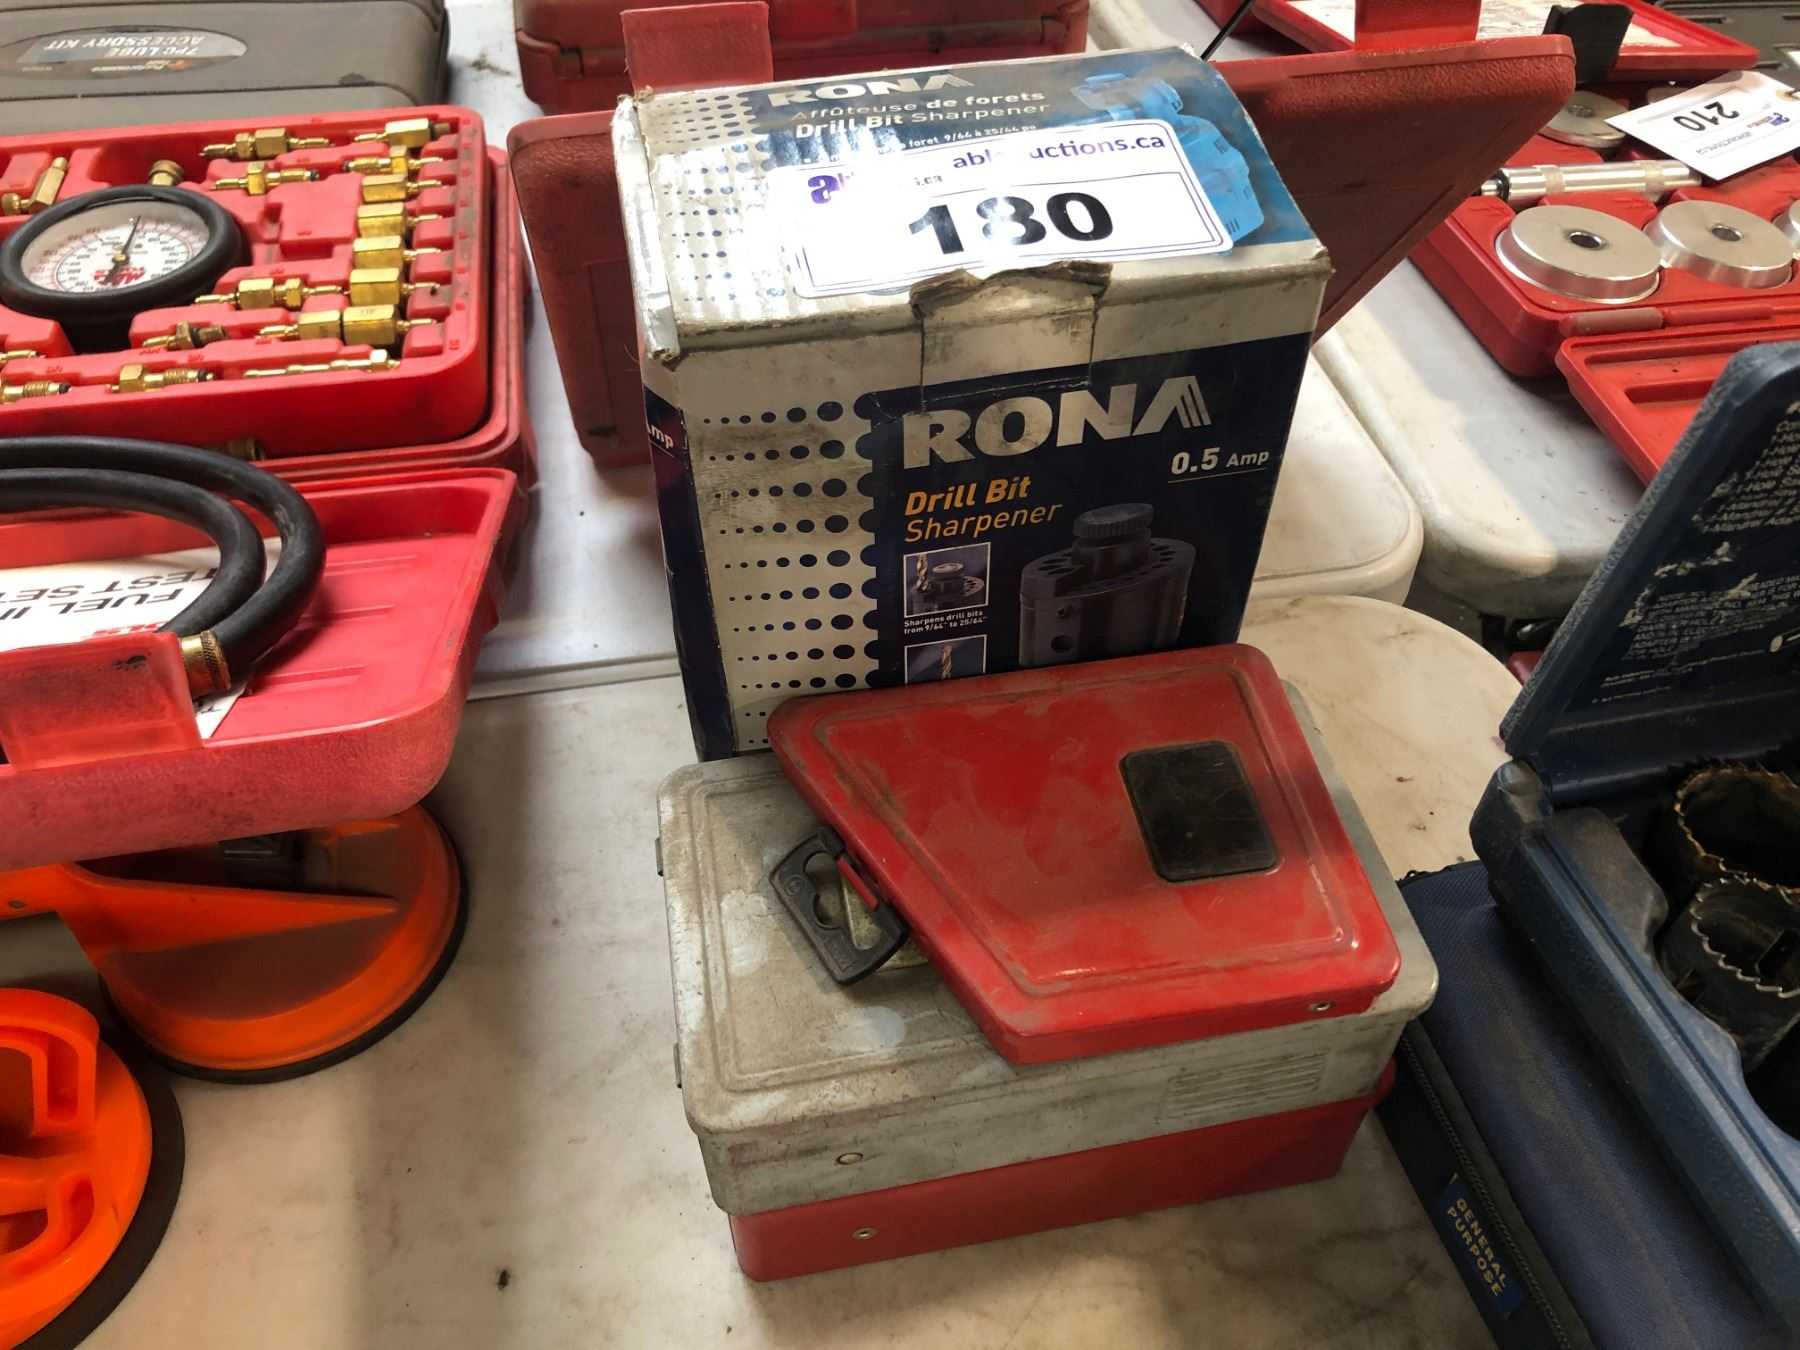 Rona Moving Boxes Rona Bit Sharpener Assorted Drill Bits